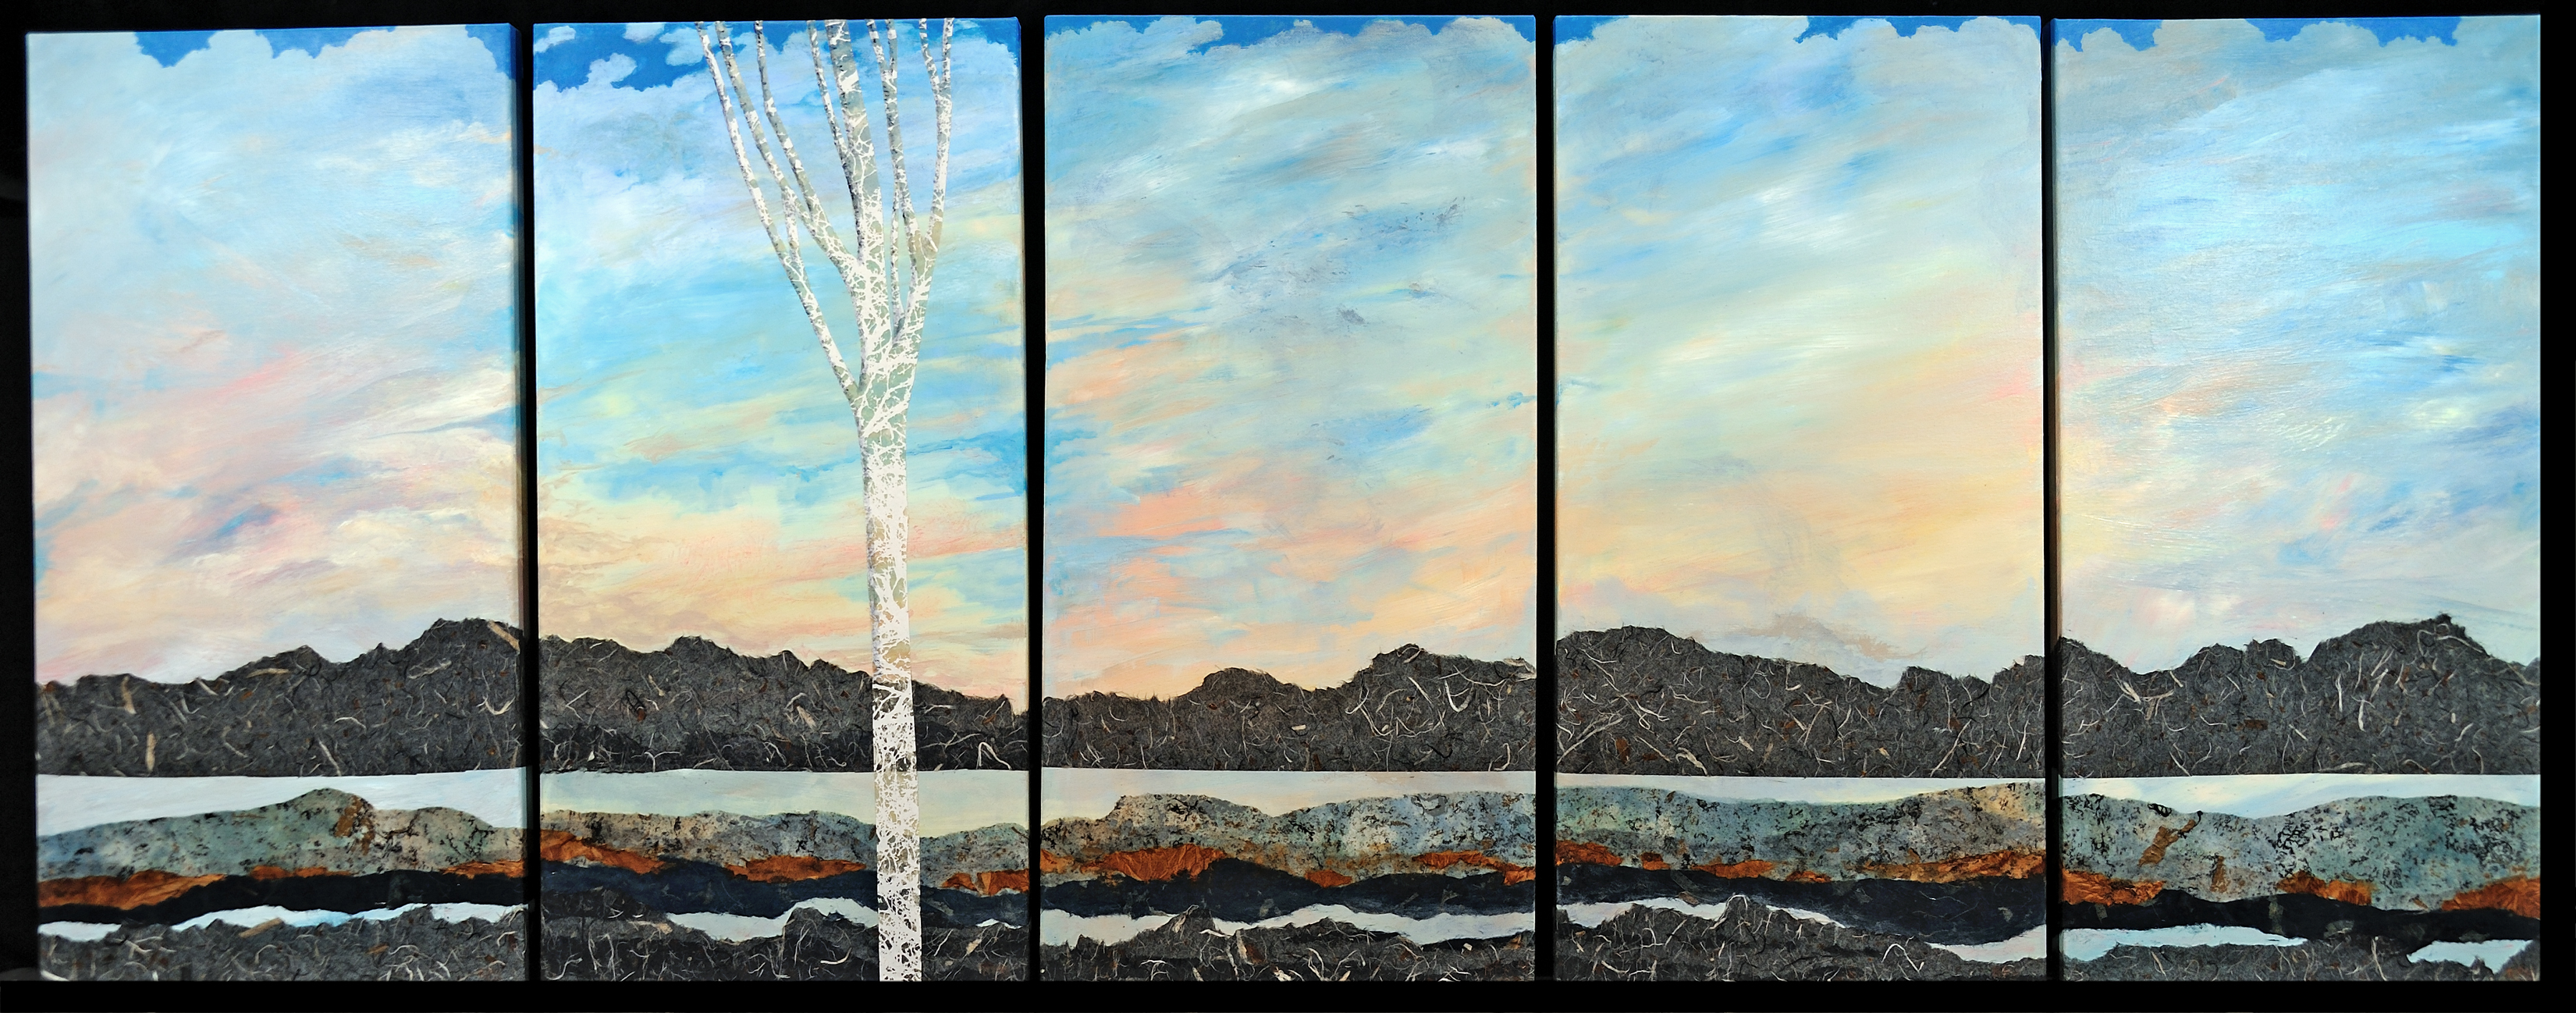 """Memories of Lake Mead"" - 15"" x 30"" [x 5 pieces]Mixed Media on Canvas"